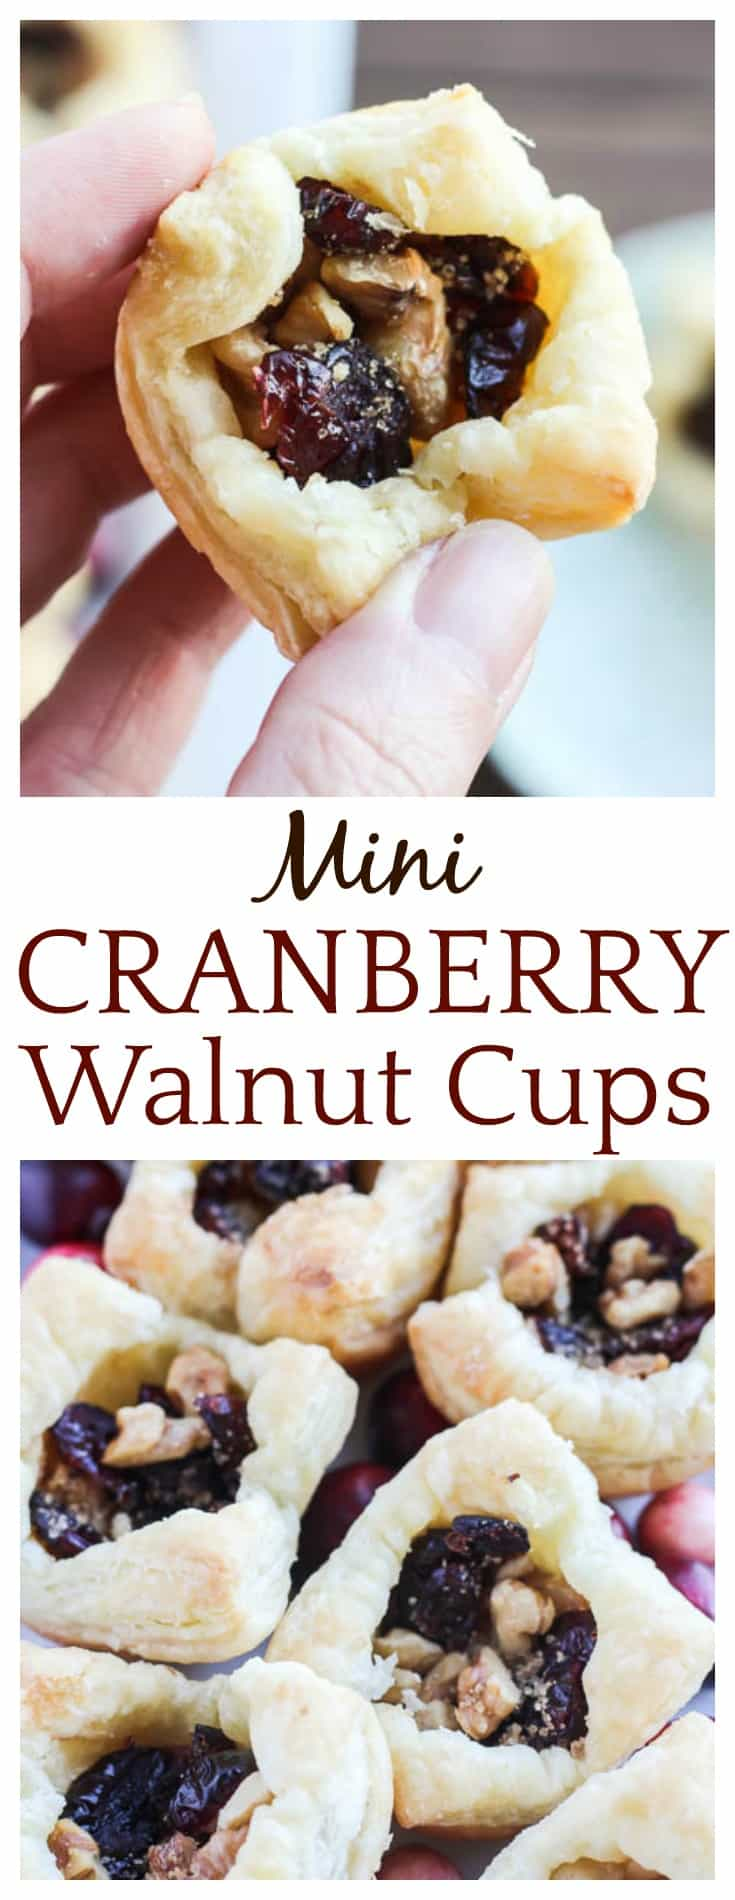 These Mini Cranberry Walnut Cups make a delicious appetizer or treat for the holidays! Made with Puff Pastry Sheets, sugar, and spice, they are sure to delight! #ad #InspiredByPuff #appetizers #holidayrecipes #DLBrecipes